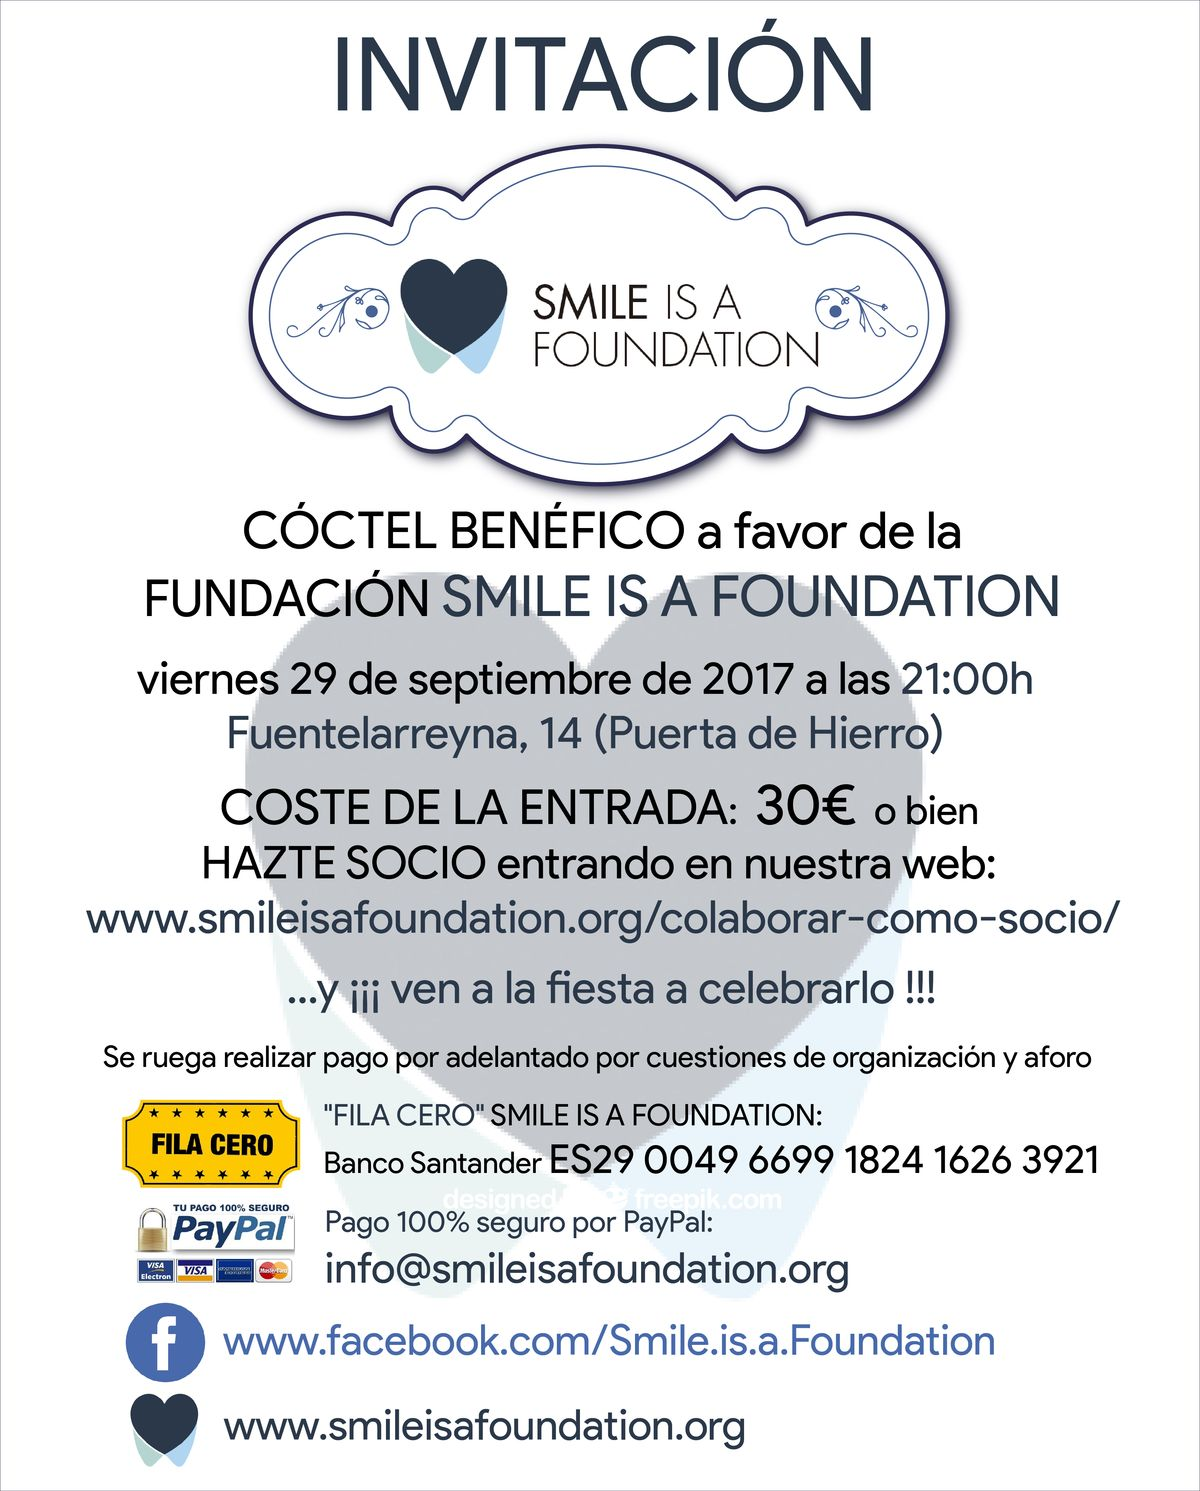 invitacion fiesta Smile is a Foundation 2017 Zimbabwe